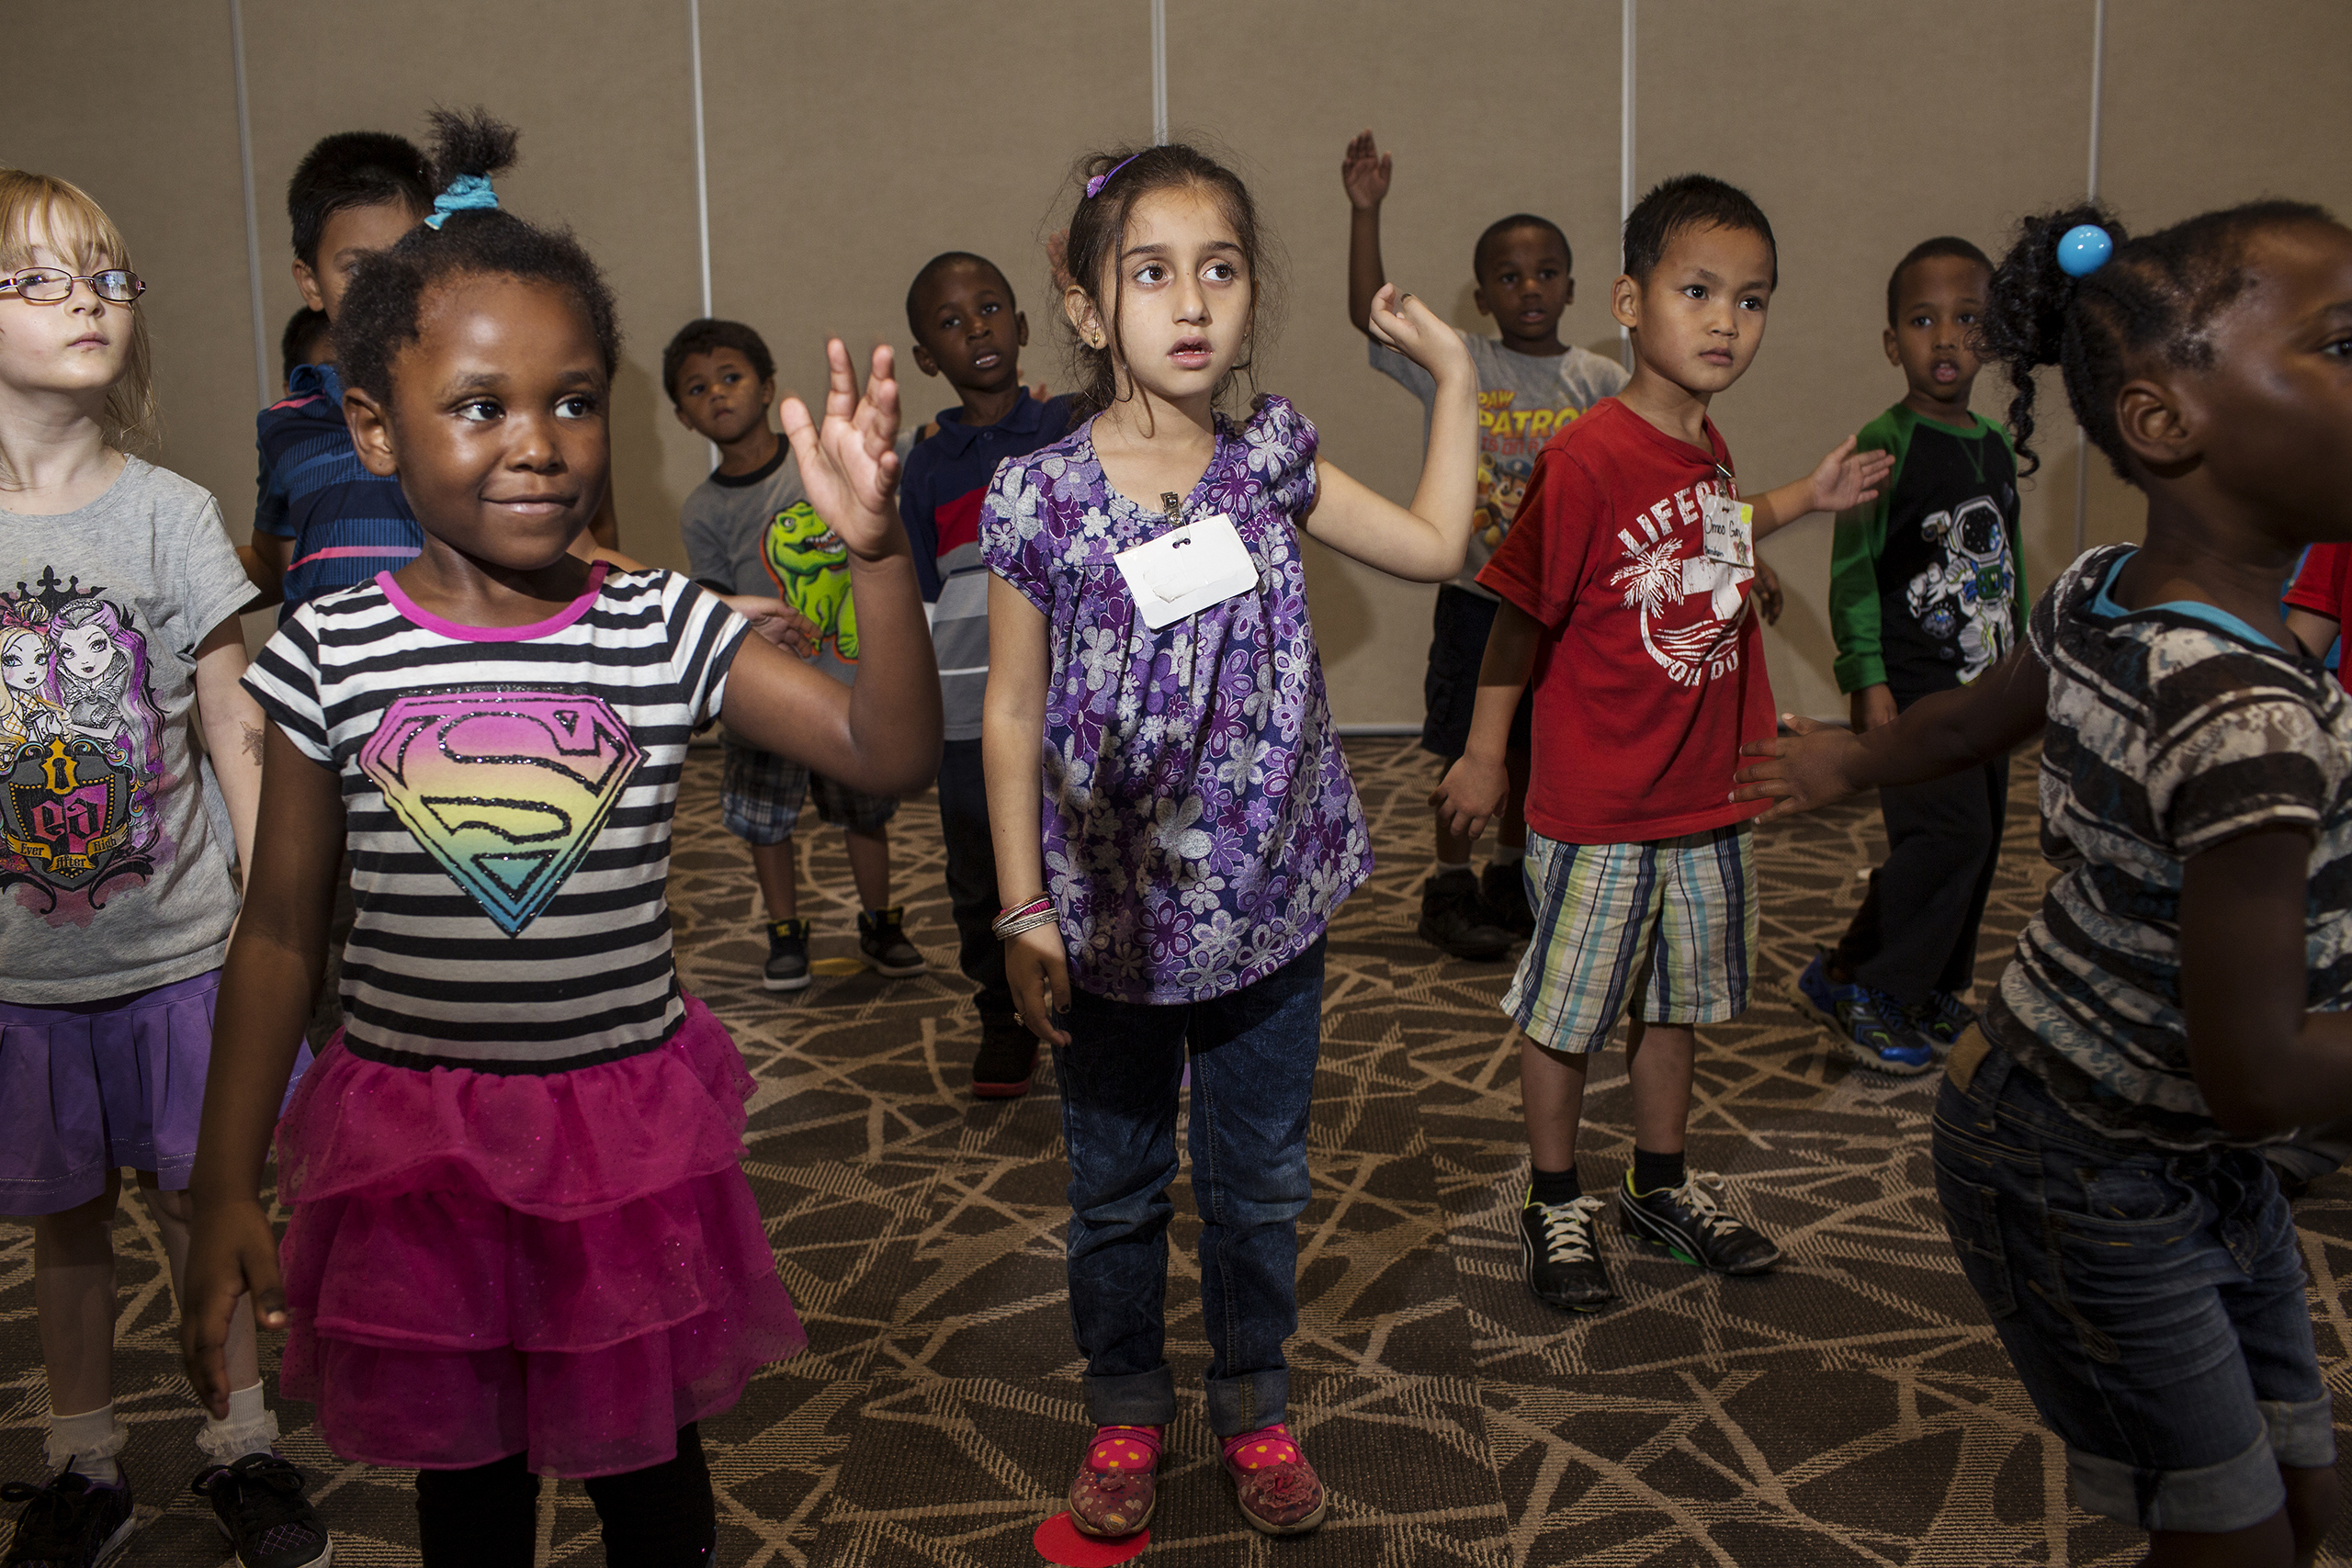 Hala Tameem, 6, and classmates during music class at Edmunds Elementary School in Des Moines, Iowa.